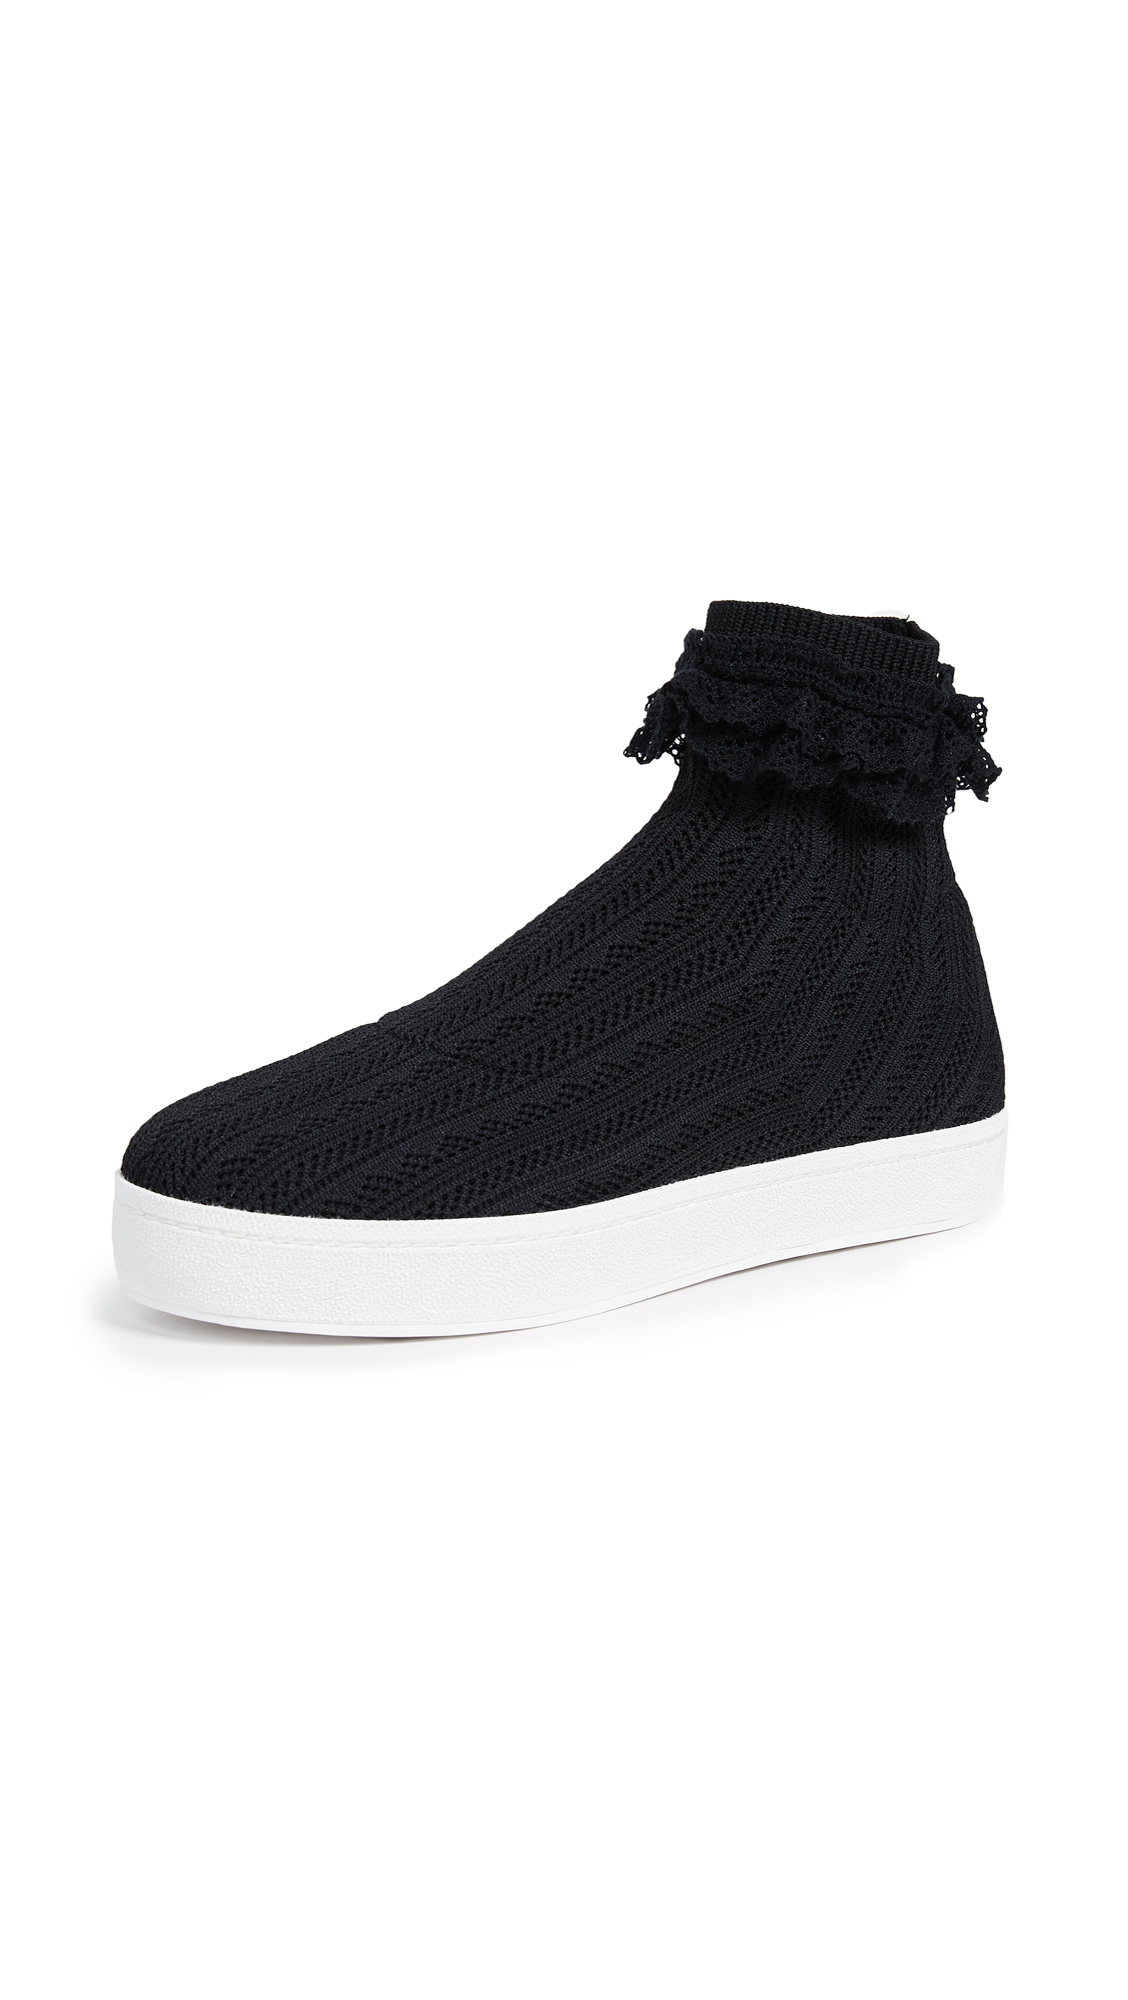 Opening Ceremony Bobby Lace Sneakers - Black